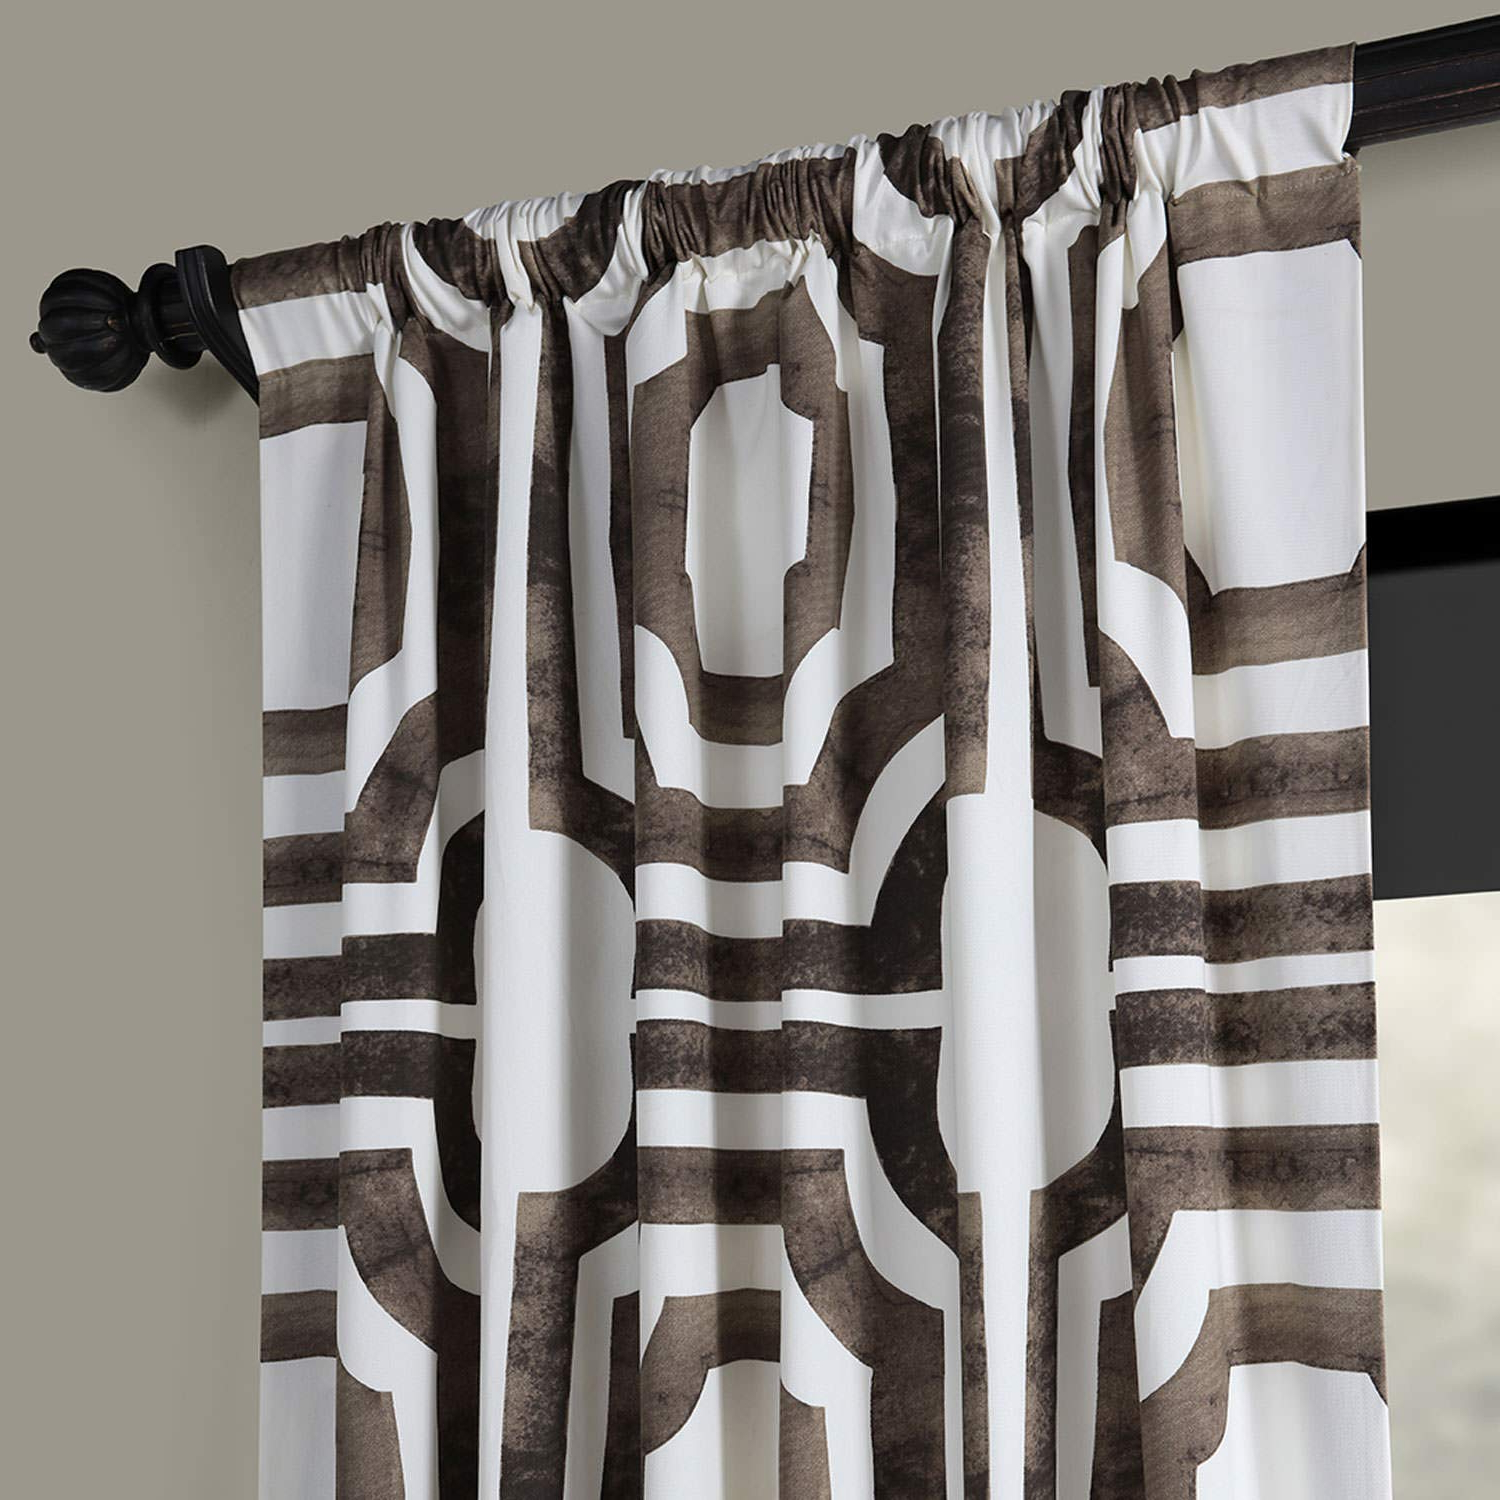 Half Price Drapes Prtw D23 96 Mecca Printed Cotton Curtain, 50 X 96, Brown Regarding Newest Mecca Printed Cotton Single Curtain Panels (Gallery 1 of 21)